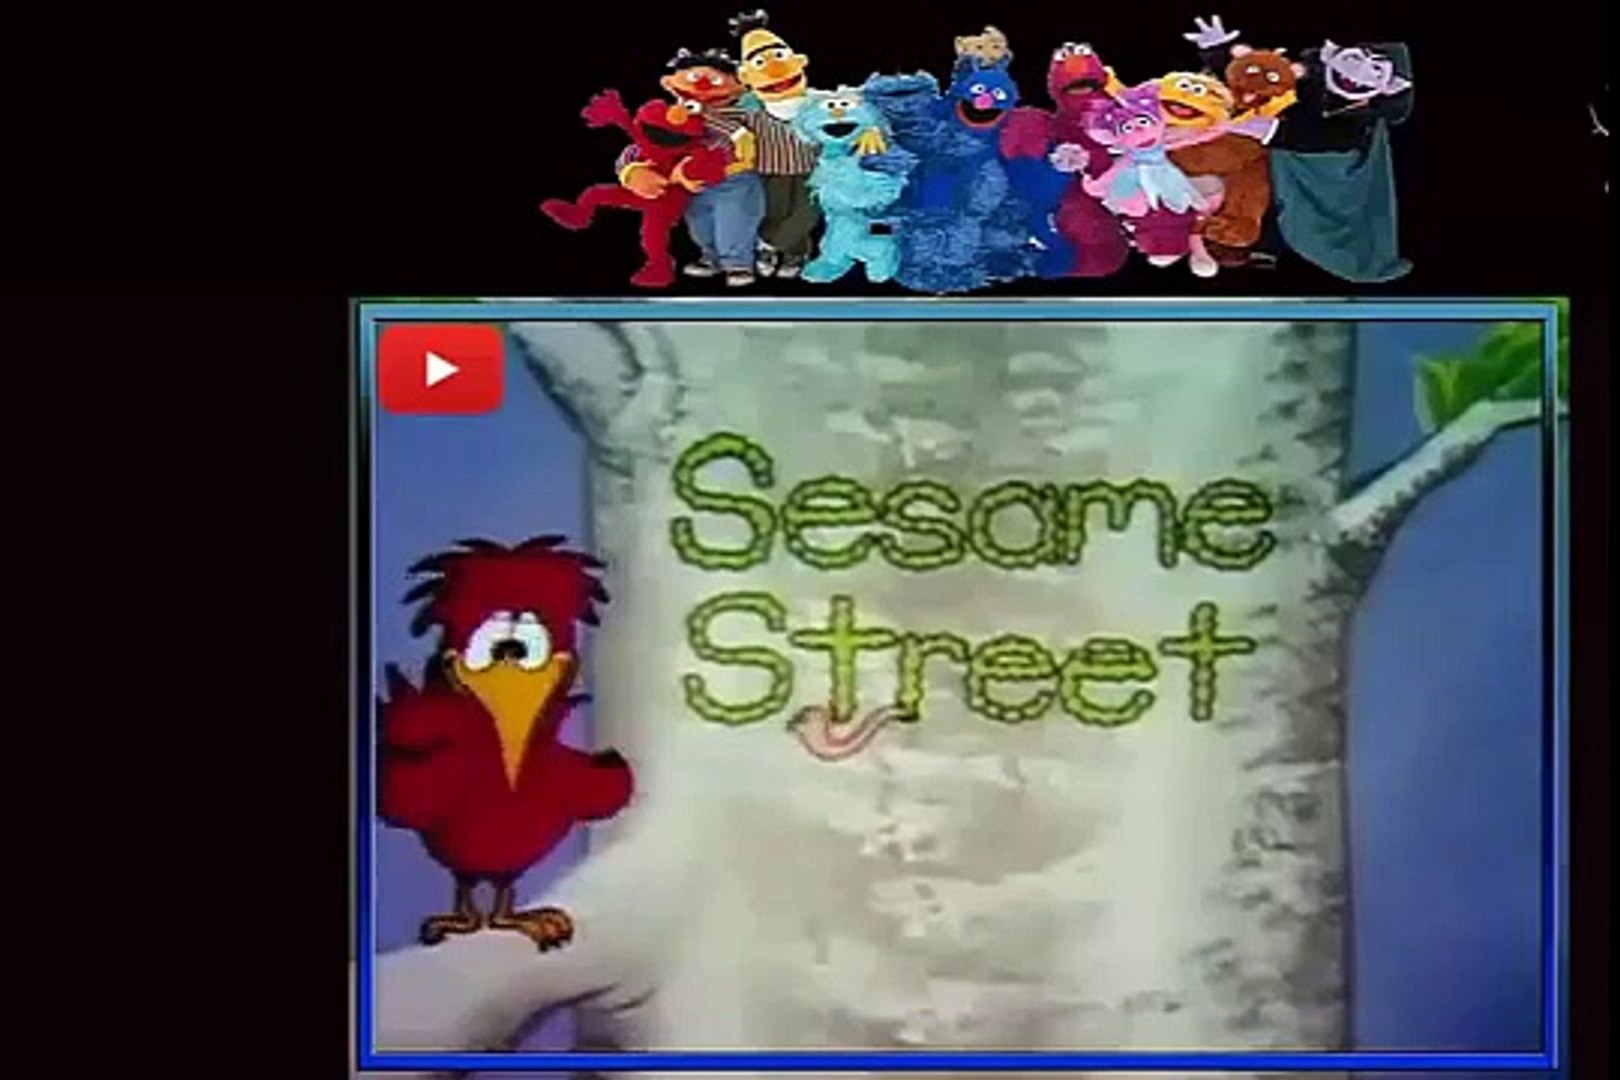 Sesame Street Old School S 2 E 1 Part 1